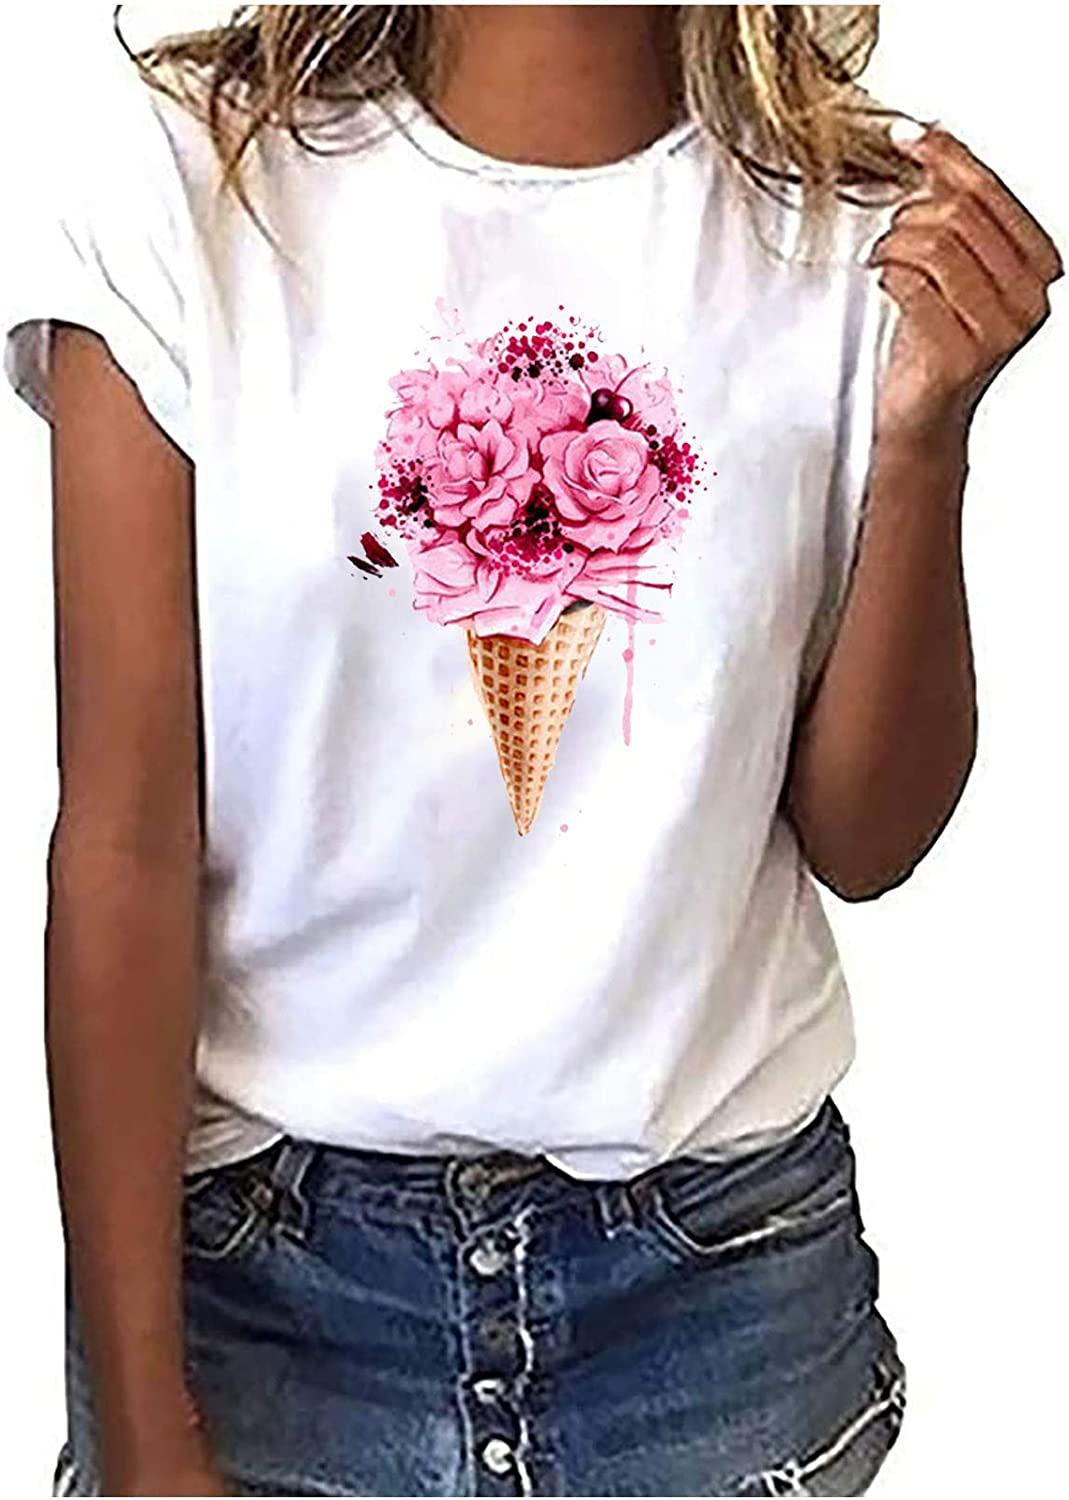 RKSTN Summer Tops for Women, Vintage Bicycle Love T-Shirt Casual Pullover Tops Korean Harajuku Style Graphic Tees